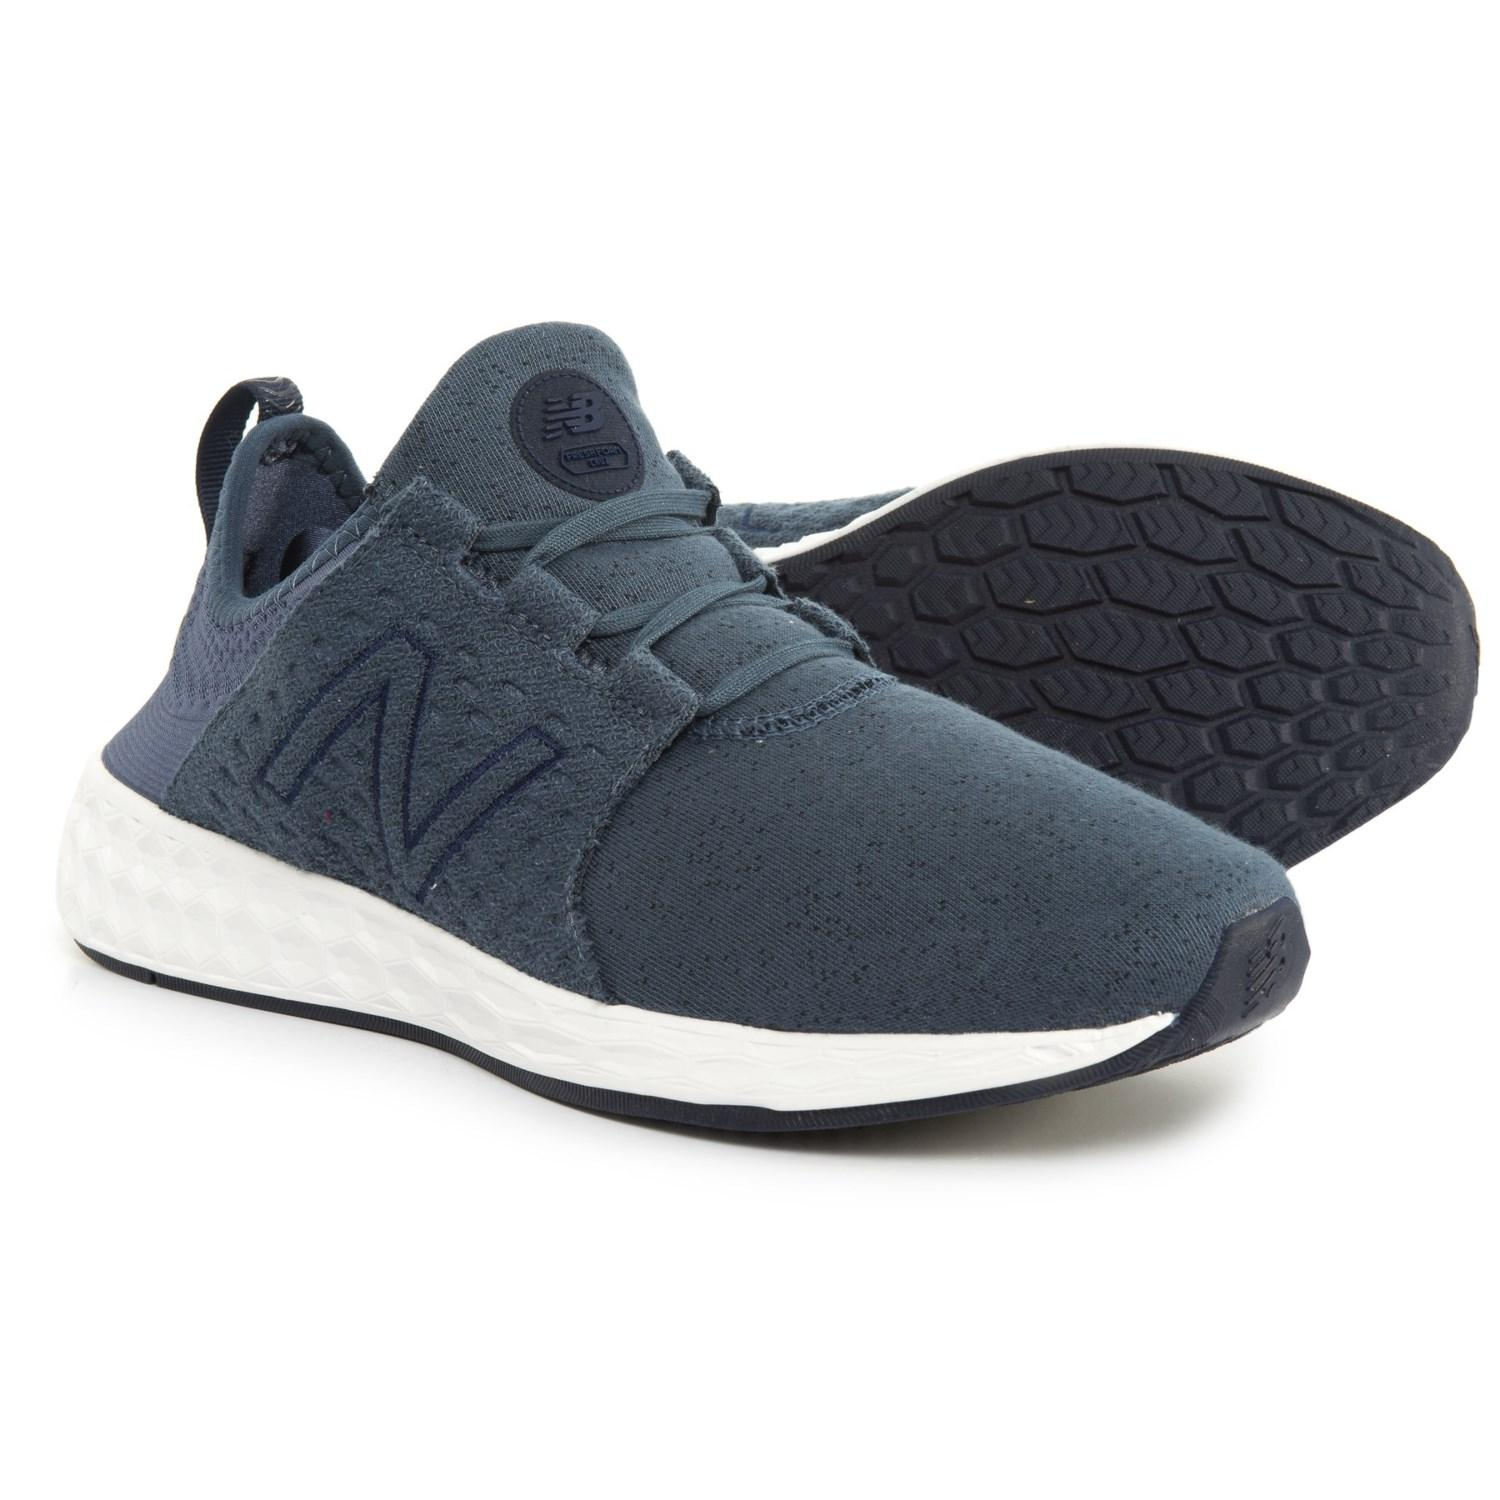 reputable site a6715 94763 New Balance - Blue Fresh Foam(r) Cruz Retro Hoodie Cross-training Shoes.  View fullscreen